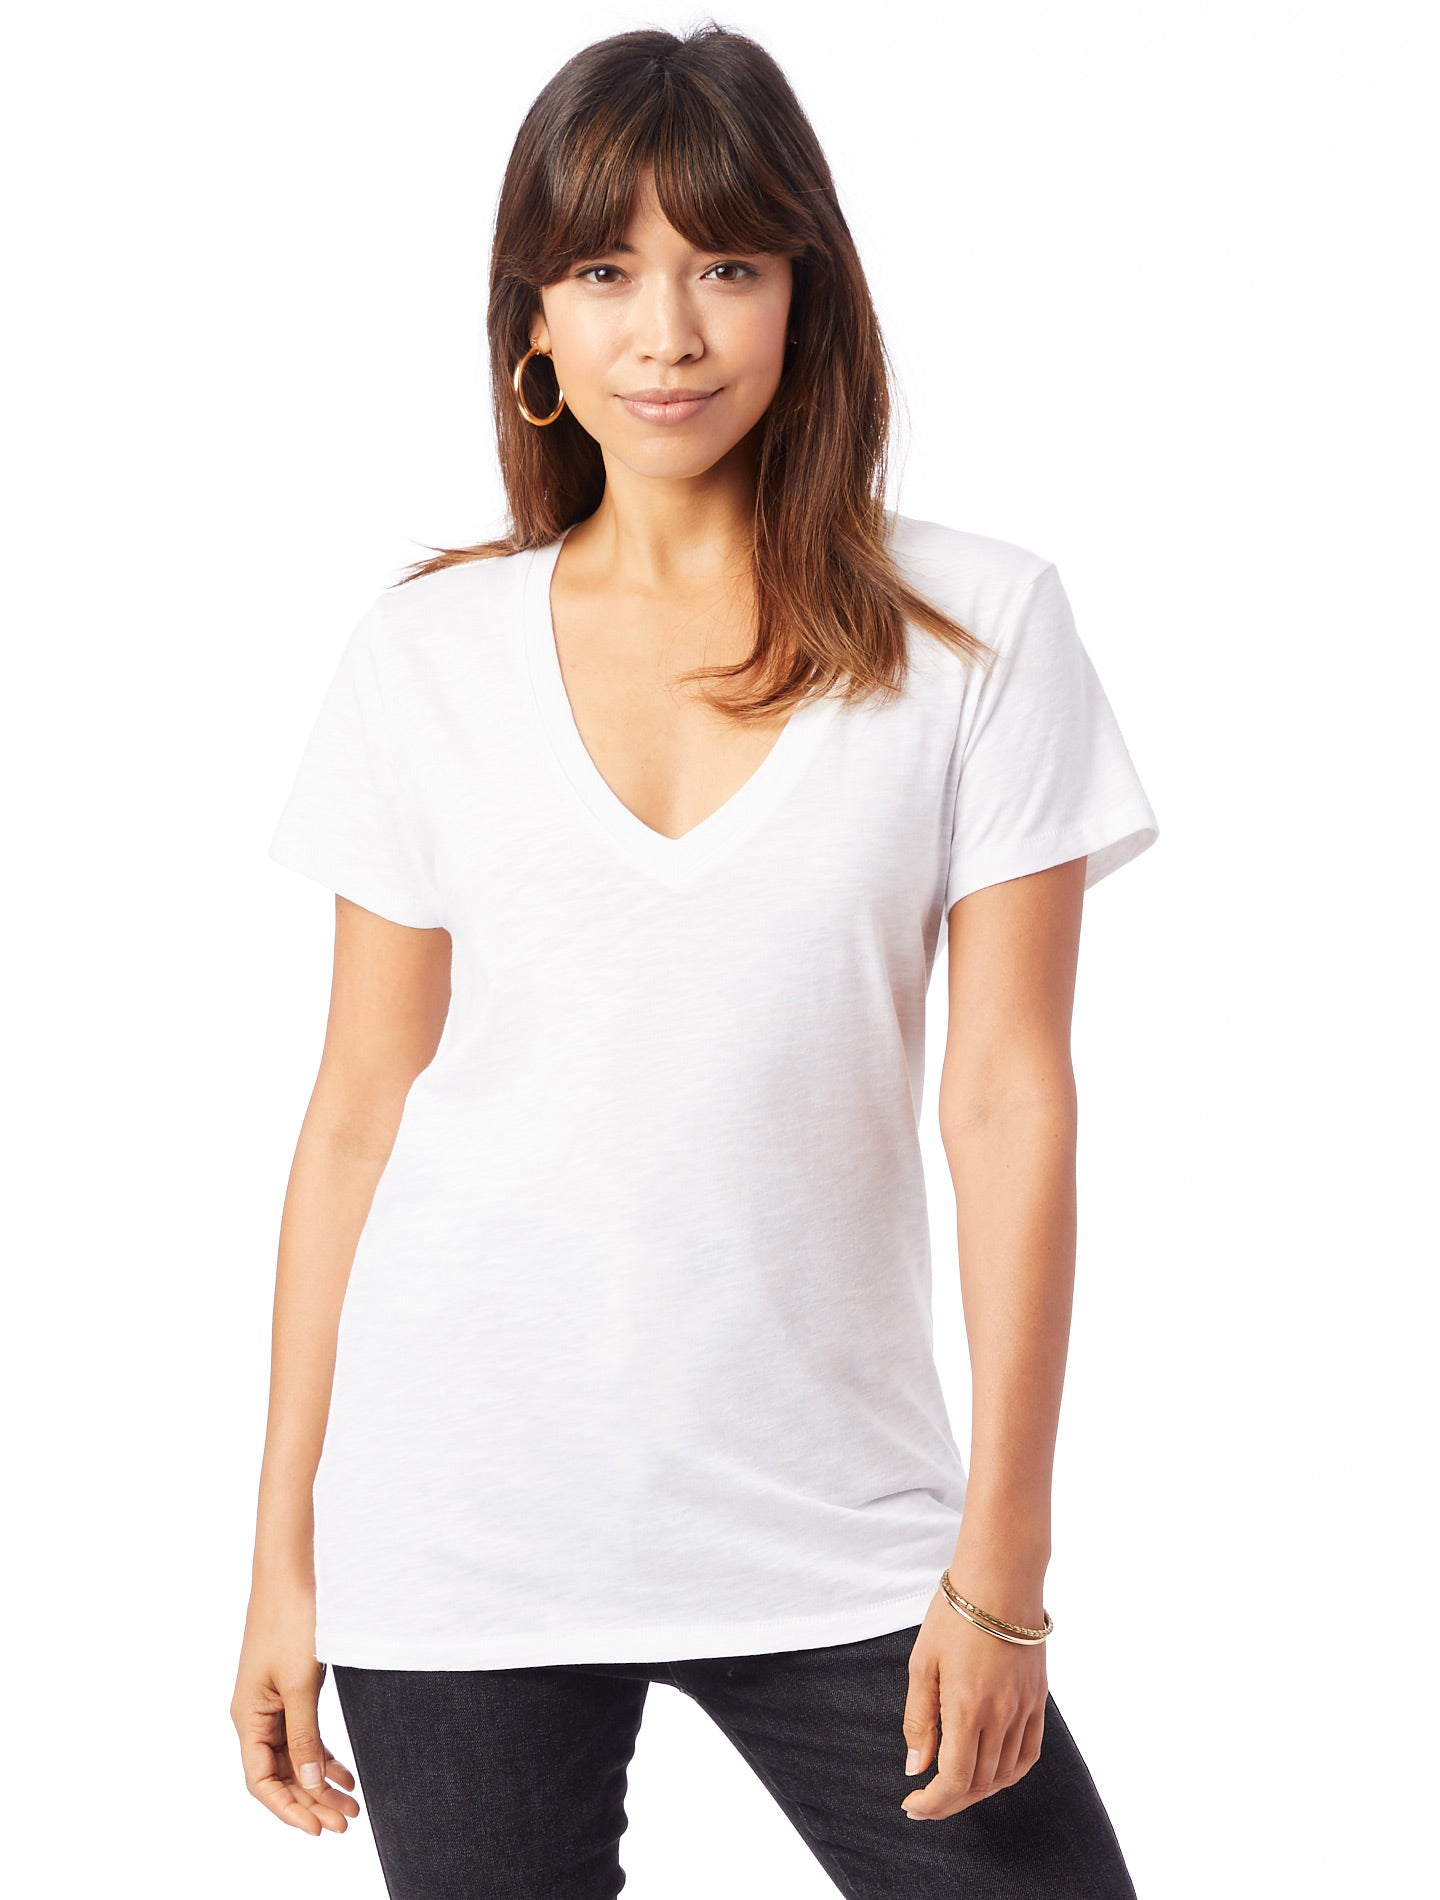 Weathered Slub So Low V-Neck T-Shirt - White